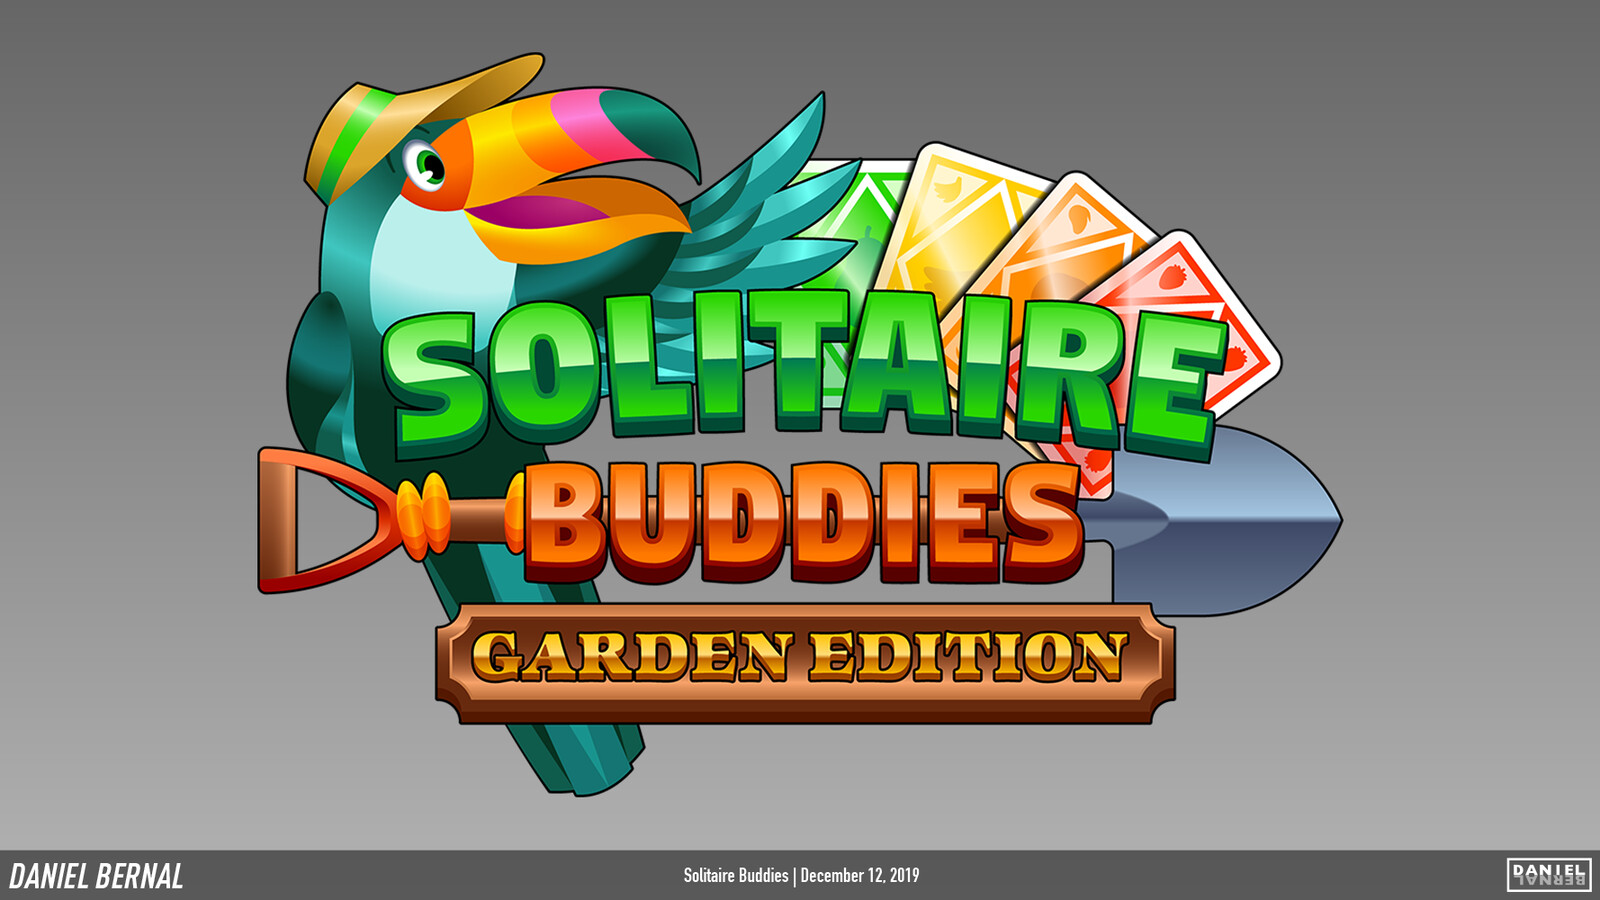 Solitaire Buddies: Garden Edition